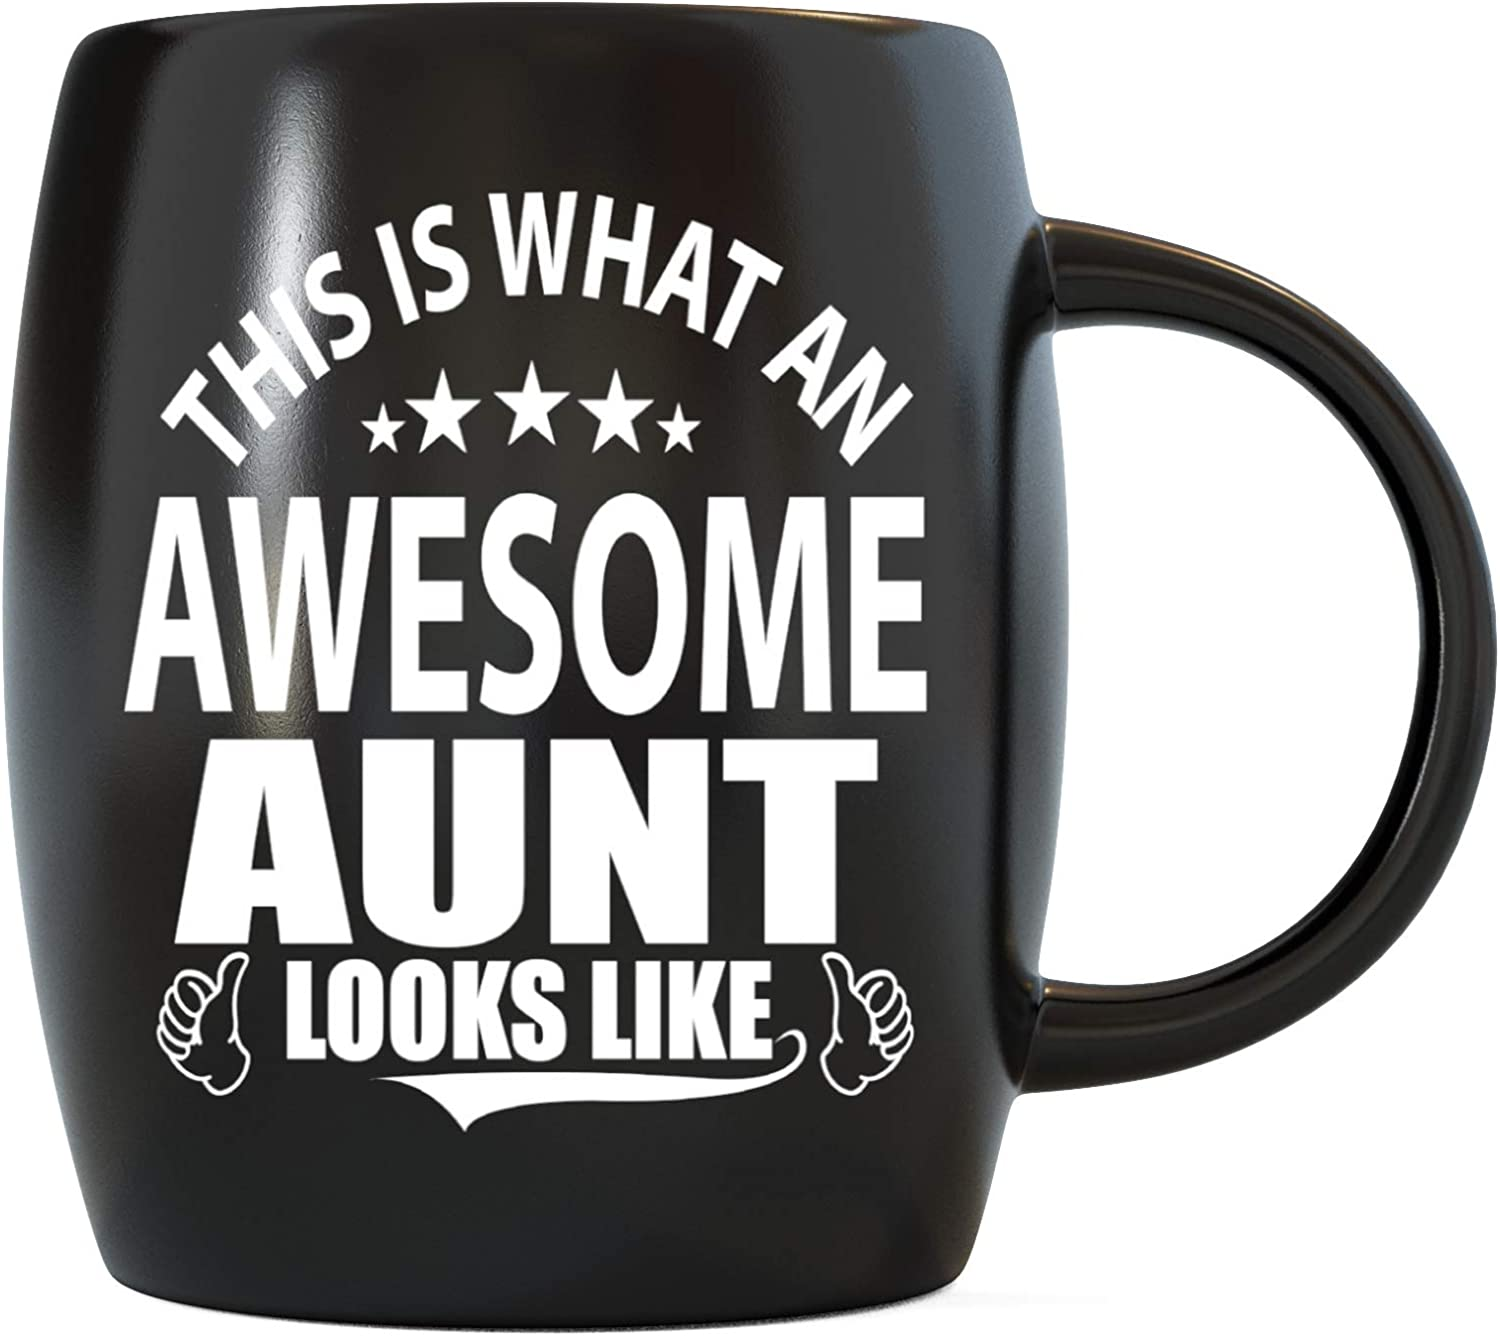 Mother's Day Gifts Best Aunt Ever This Is What An Awesome Aunt Looks Like Funny Christmas Birthday Novelty Gag Gift Idea from Niece Nephew World's Greatest Coolest Auntie Ceramic Coffee Mug Tea Cup